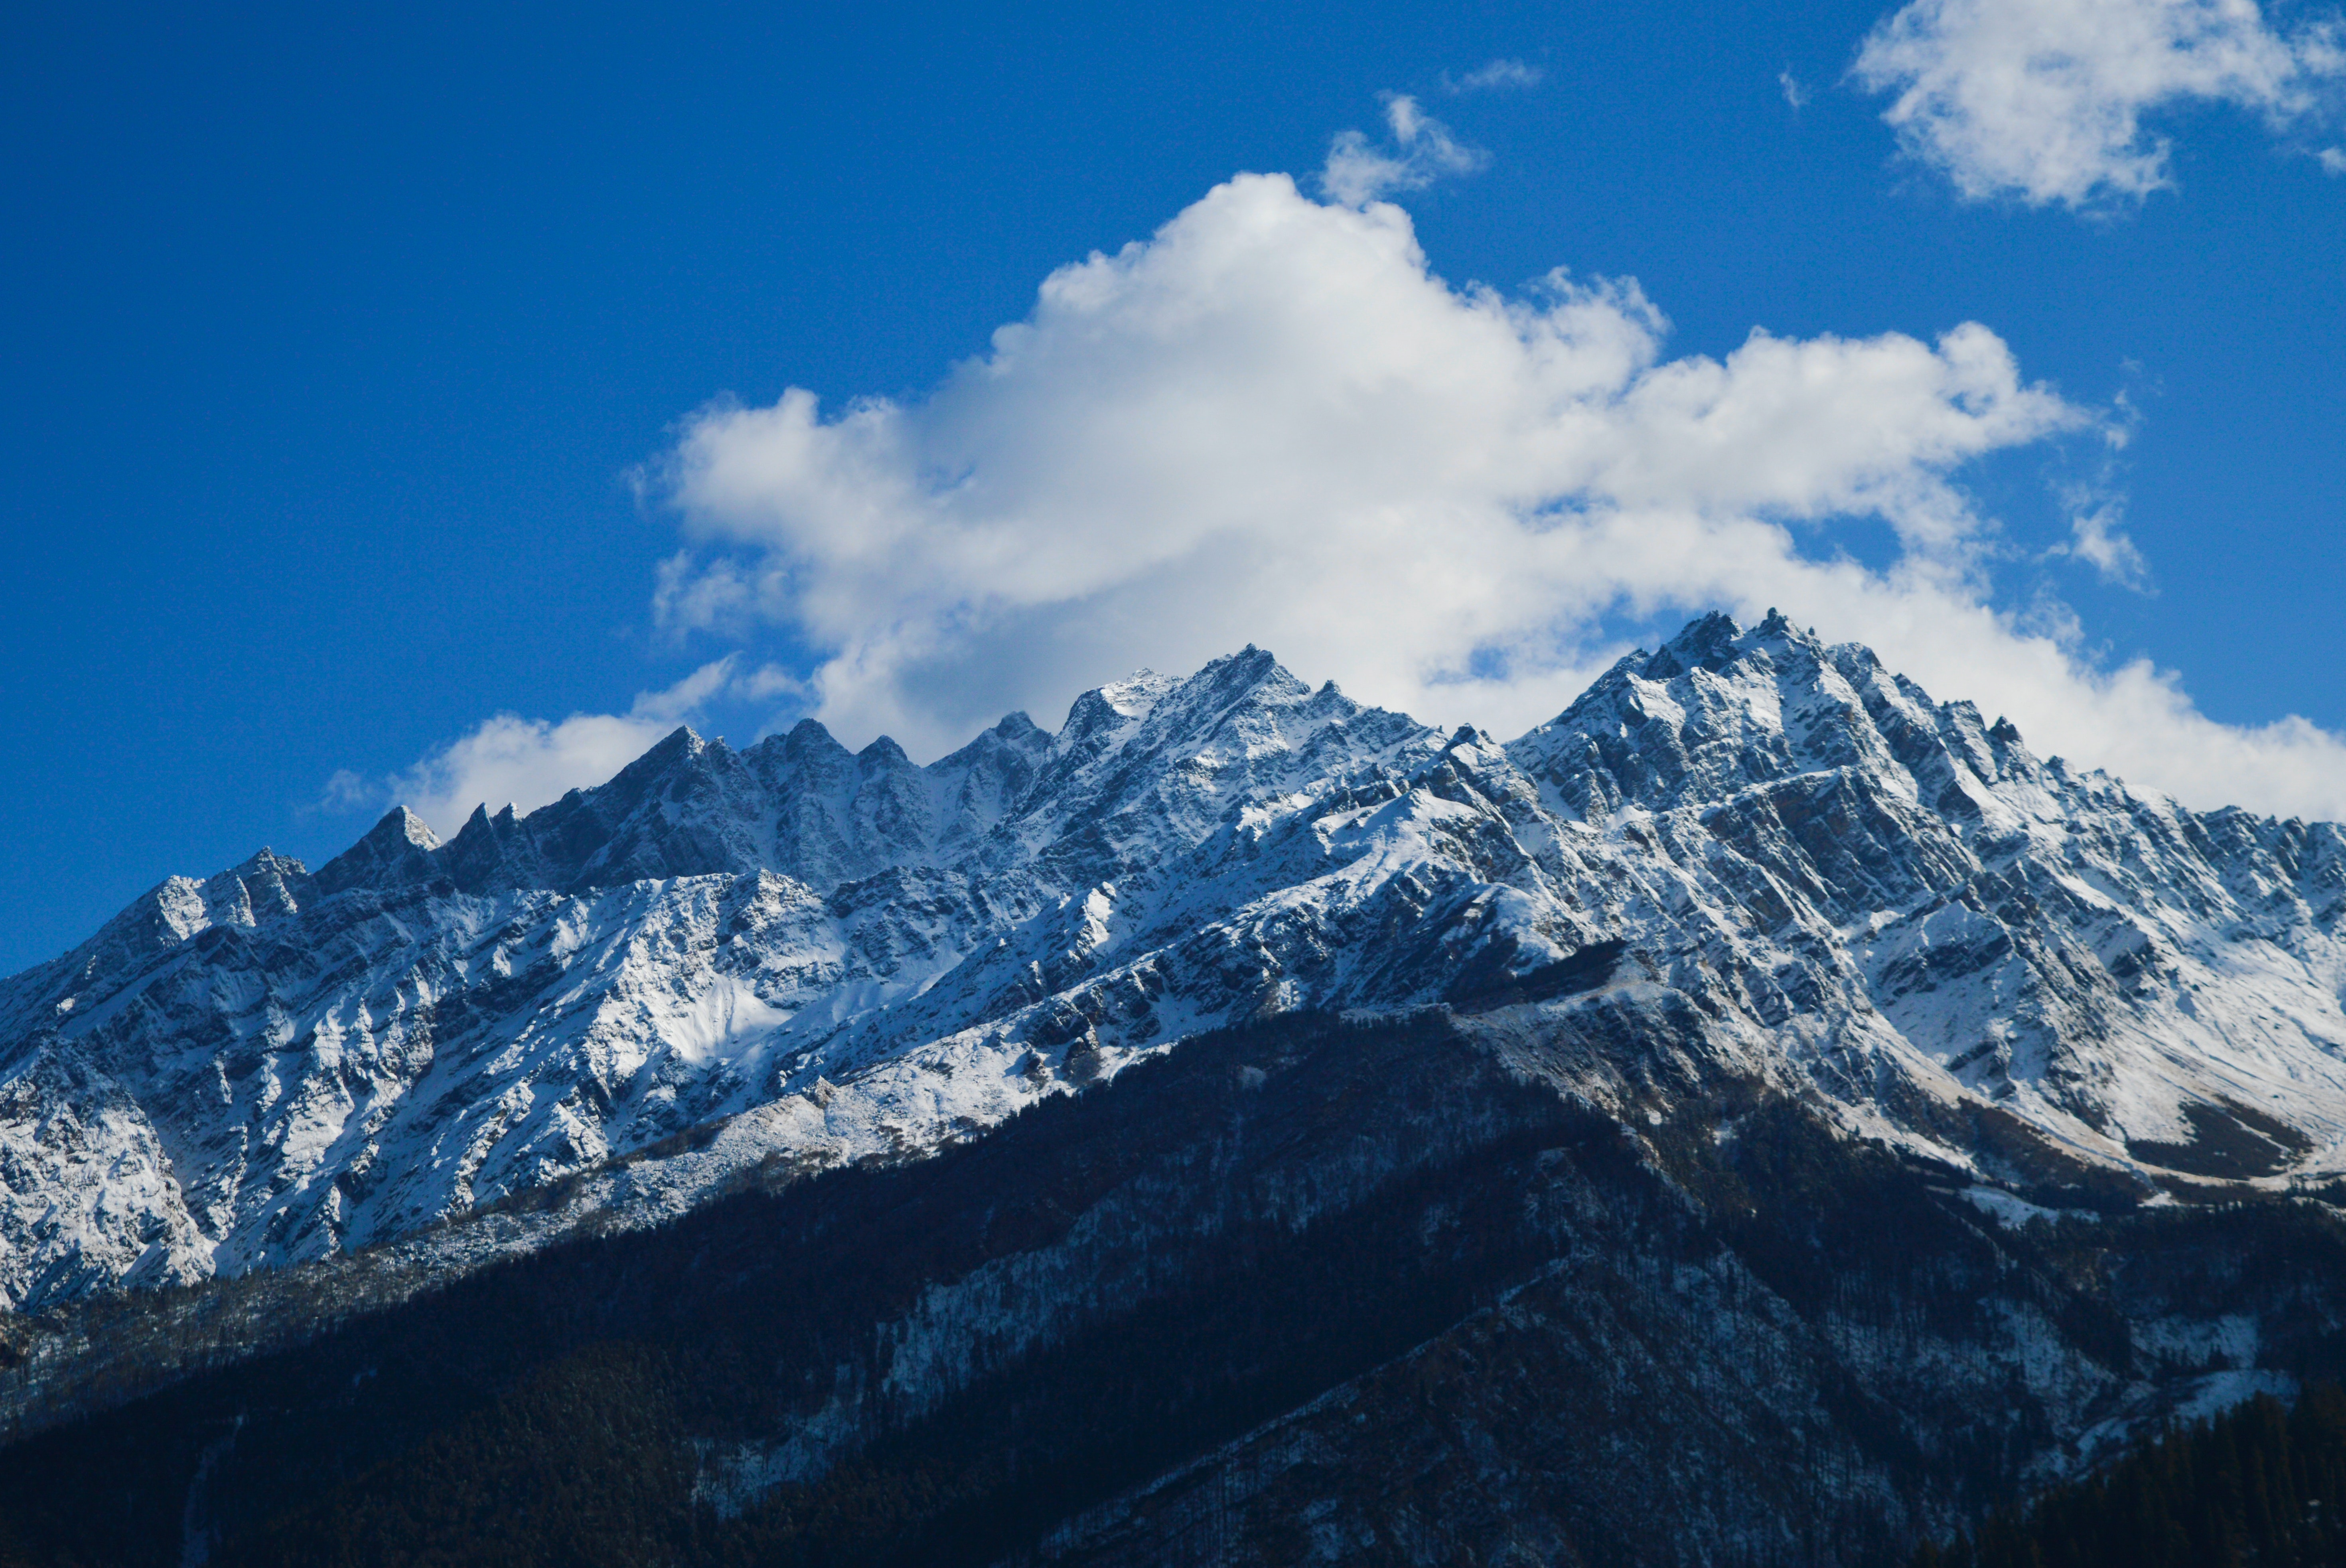 Mountain Under Blue Sky, Altitude, Nature, Winter, Wide angle photography, HQ Photo